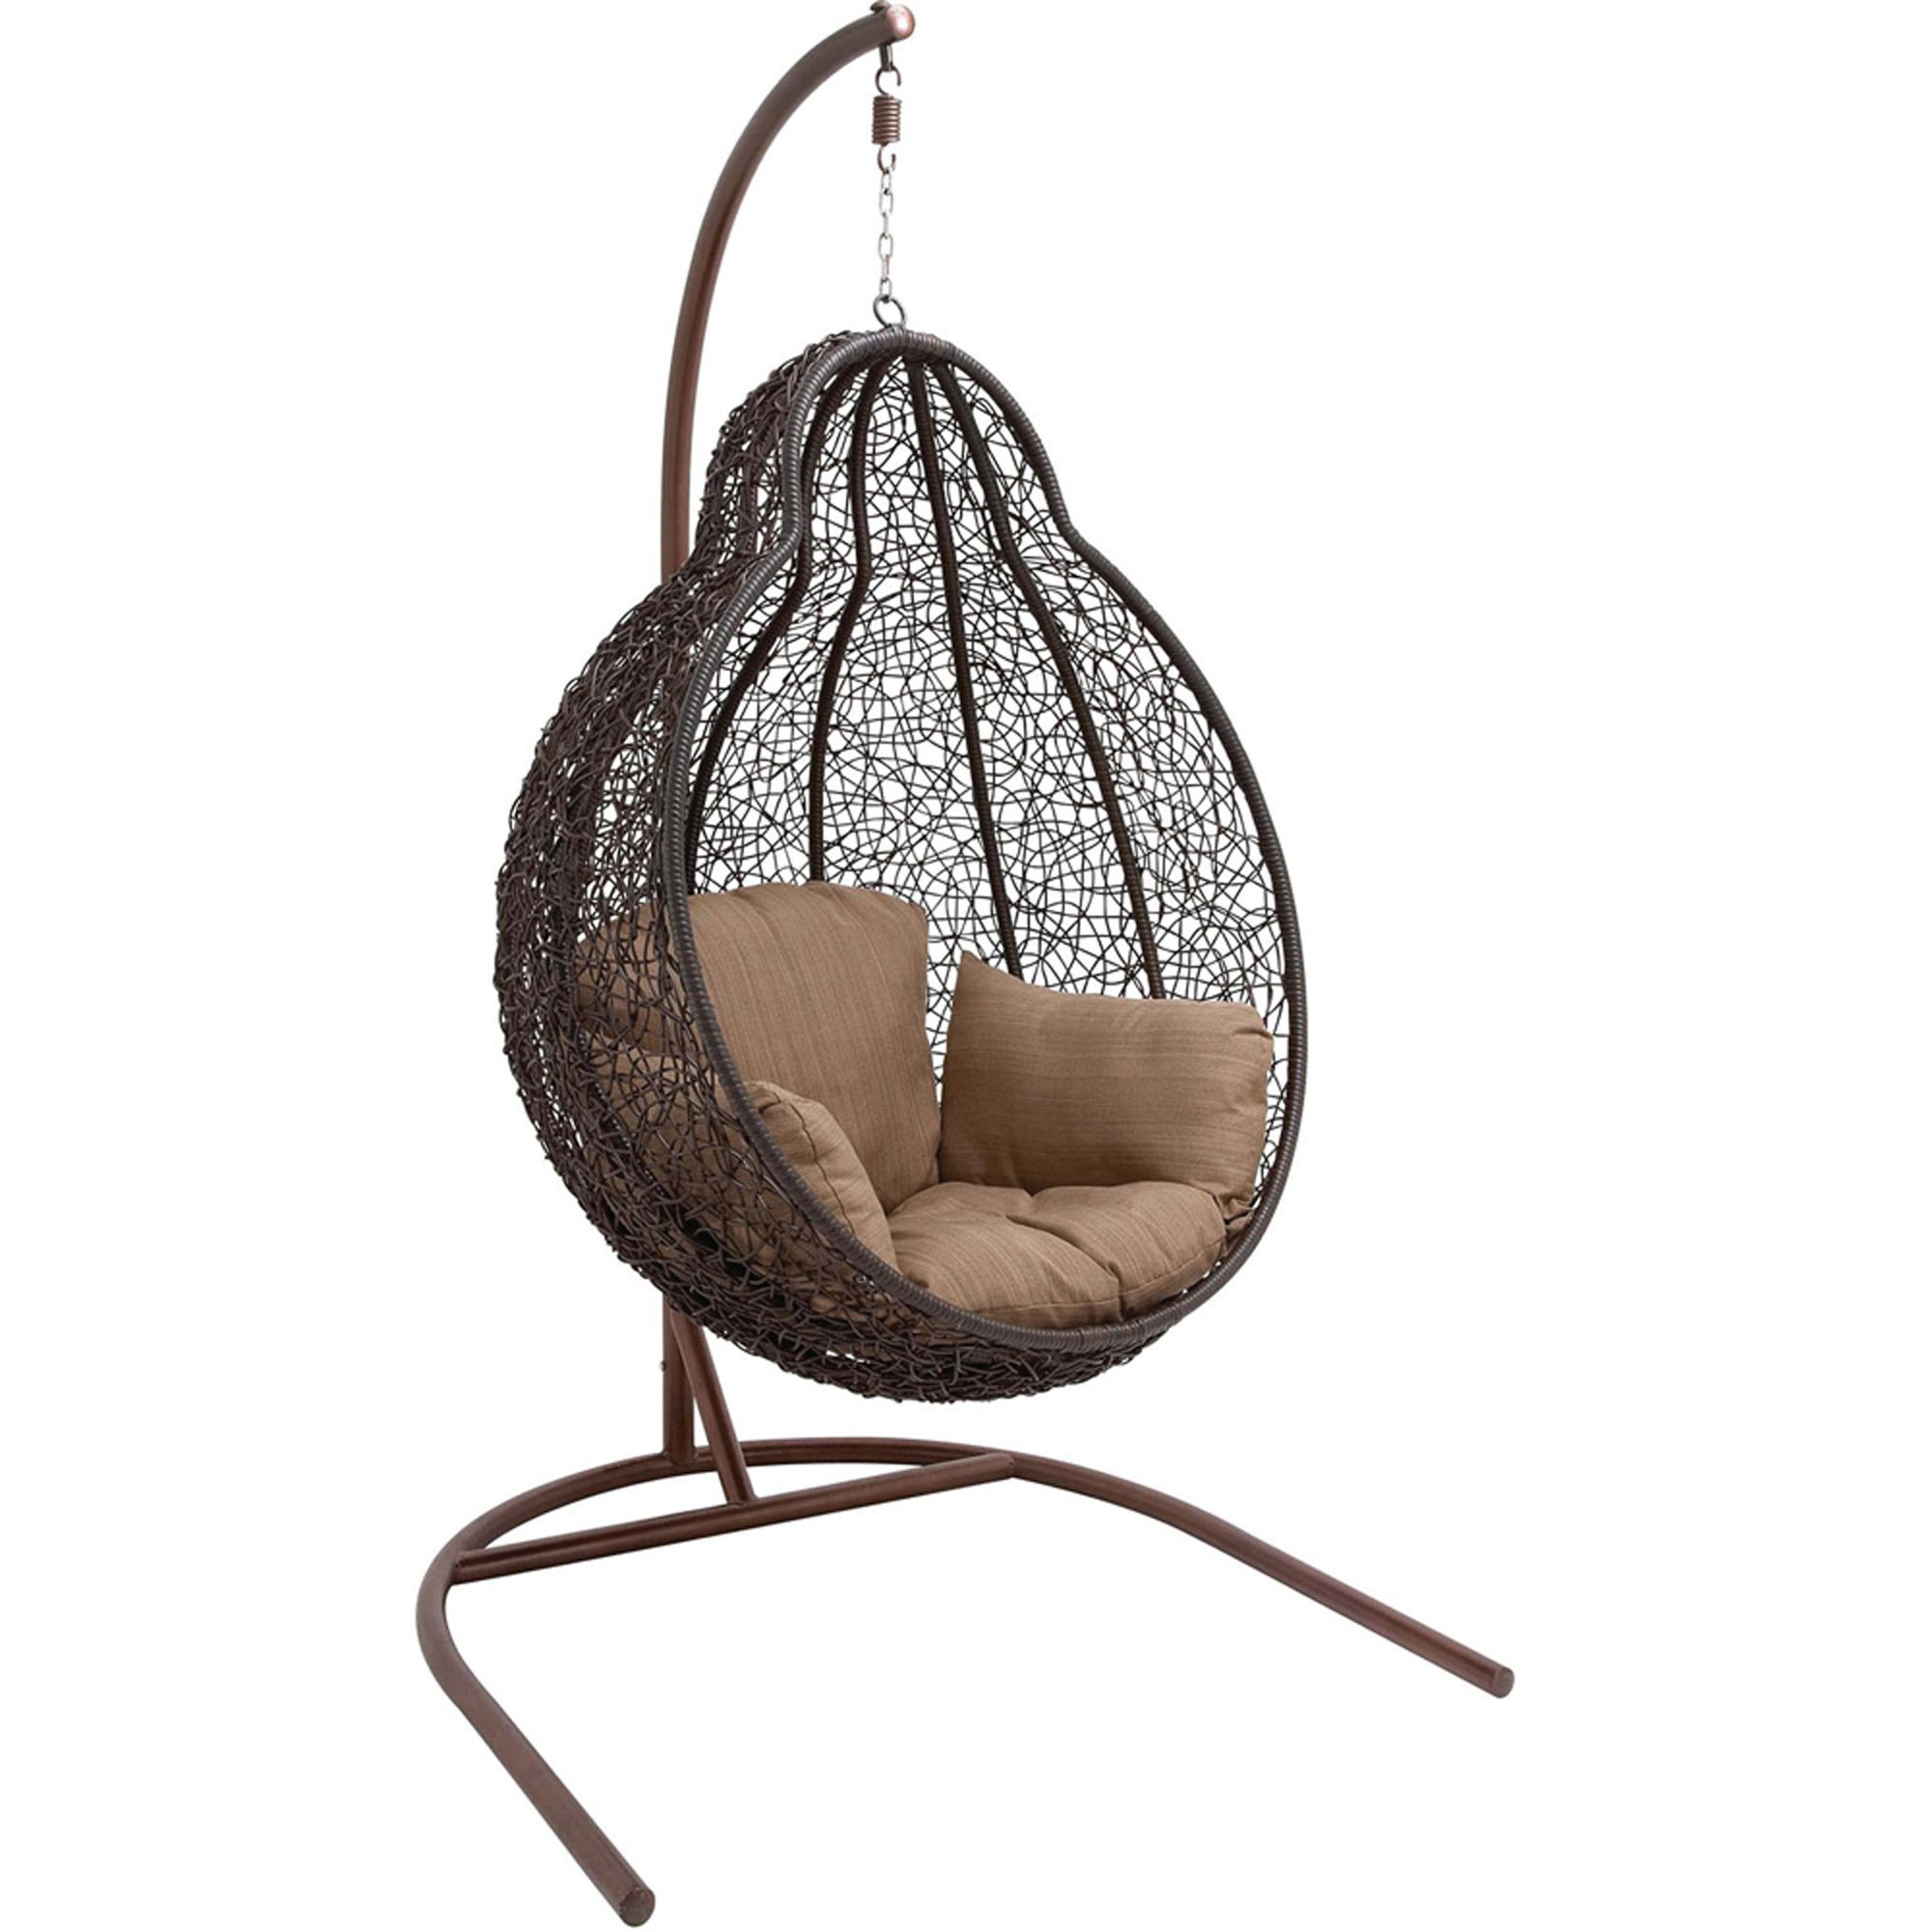 Swing Stuhl Inspirational Outdoor Swing Chair With Stand About Remodel Office Chairs Online With Additional 45 Outdoor Swing Cha… | Swinging Chair, Hanging Furniture, Pod Chair